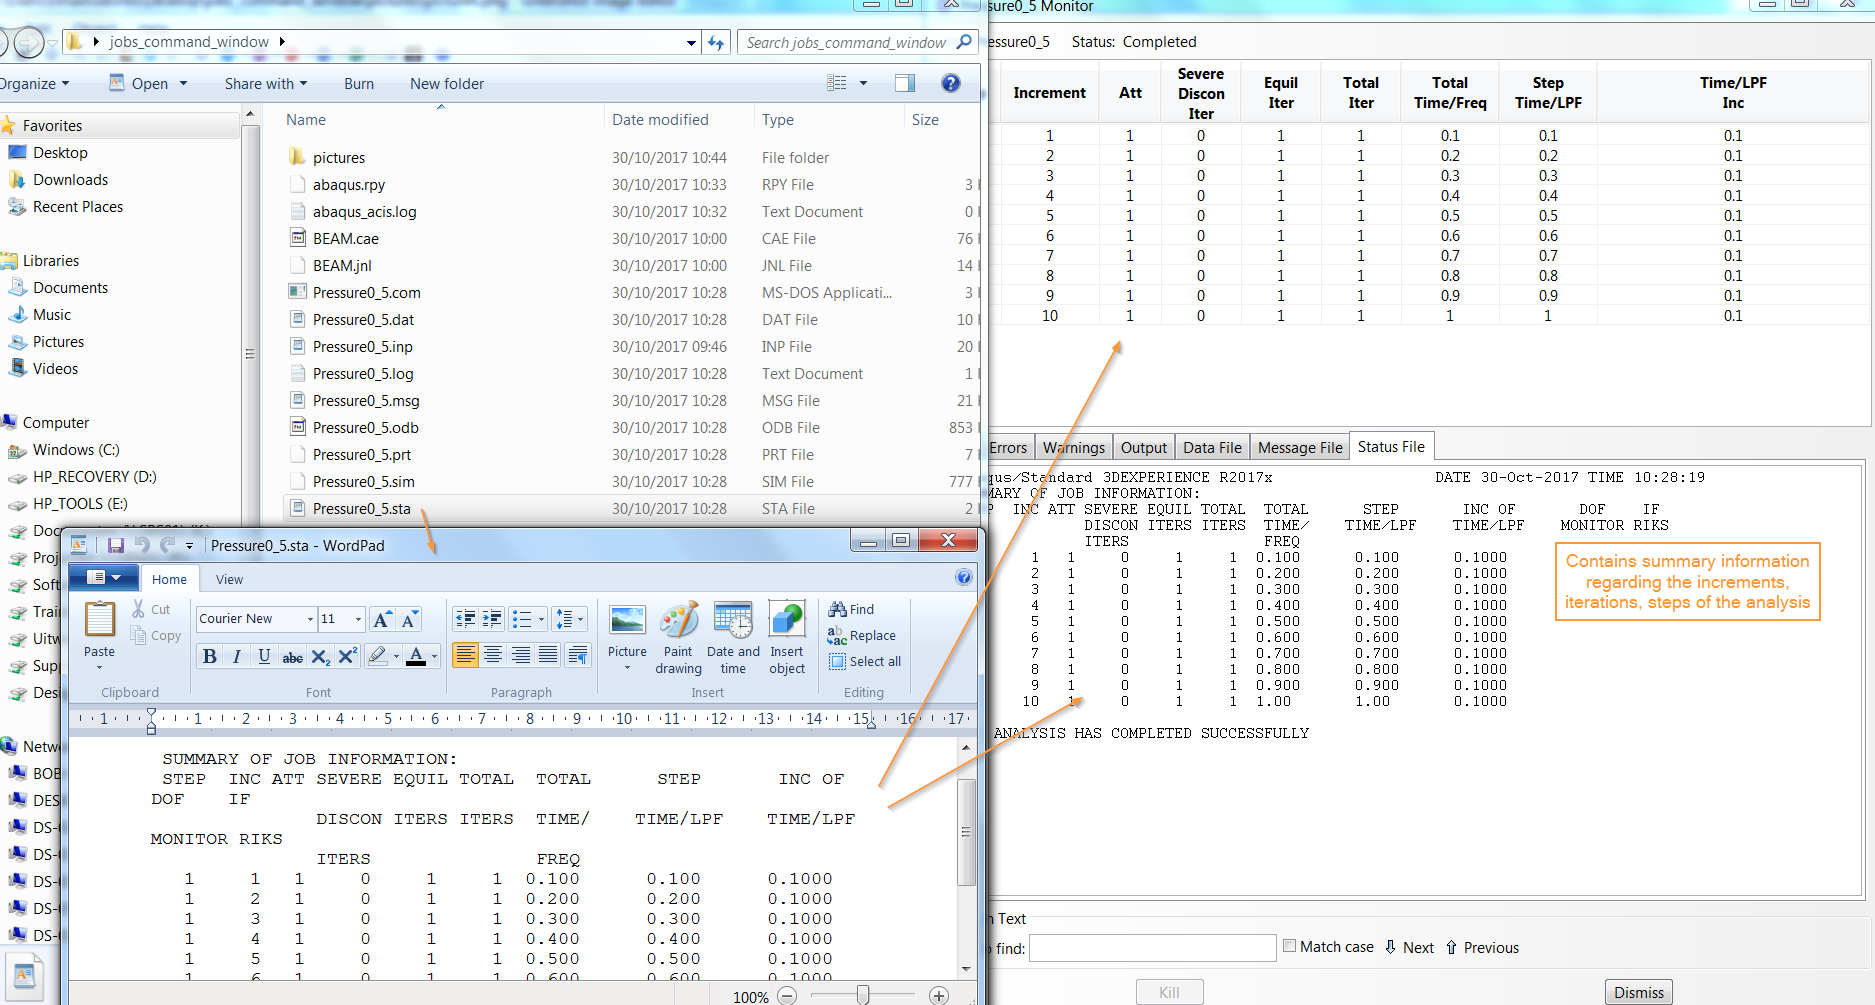 How to submit and monitor Abaqus jobs through command window